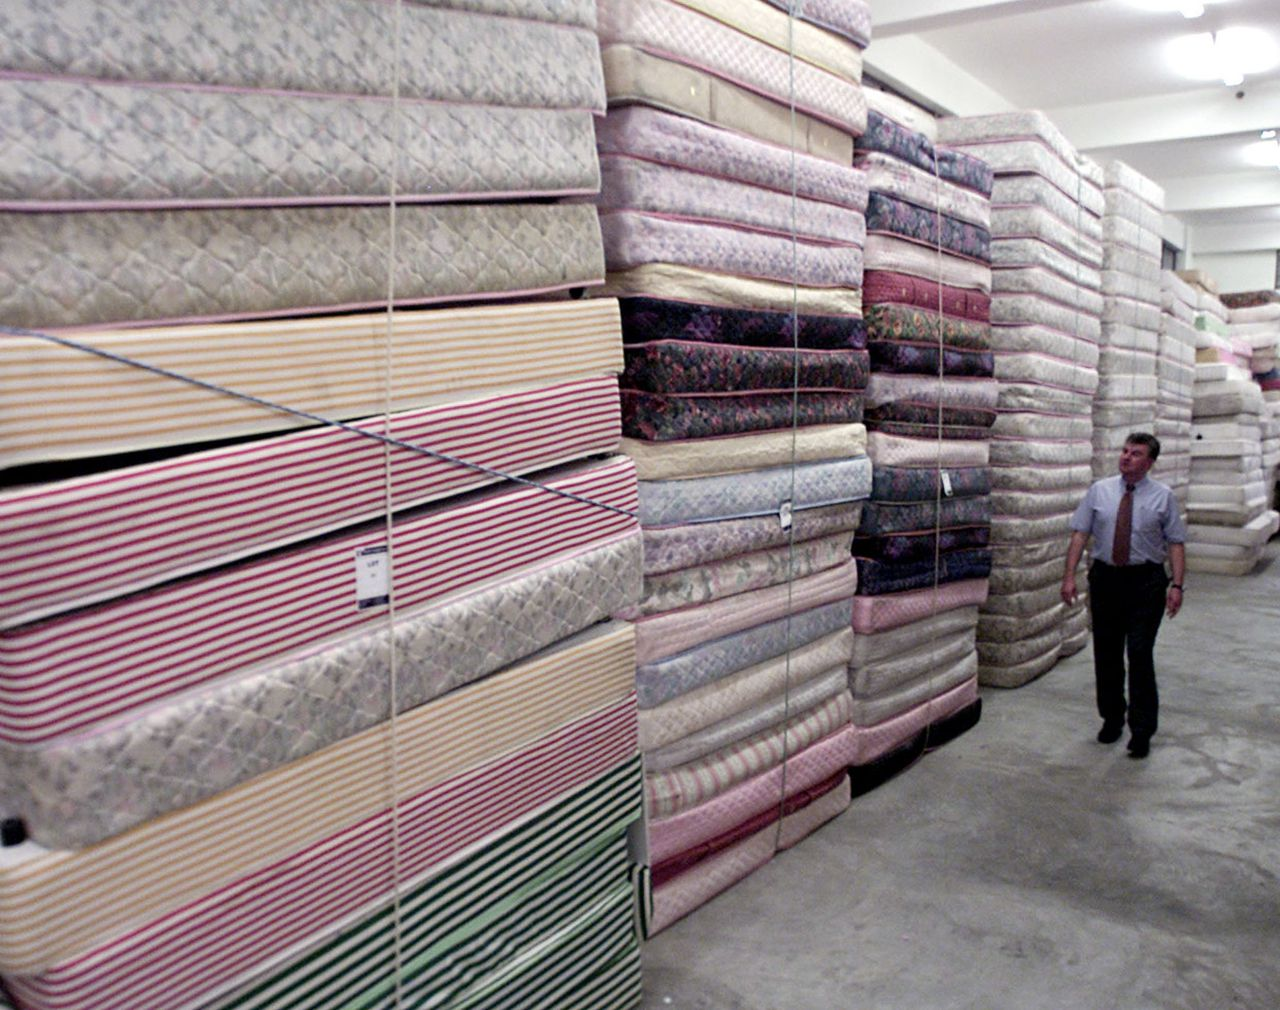 Man bekijkt wat matrassen. A man looks at mattresses put up for auction in Brunei's capital Bandar Seri Bagawan August 9, 2001. The tiny-oil rich sultanate begins a multi-million dollar auction on Saturday of assets that once belonged to Prince Jefri, its ruler's estranged younger brother. ZH/JD